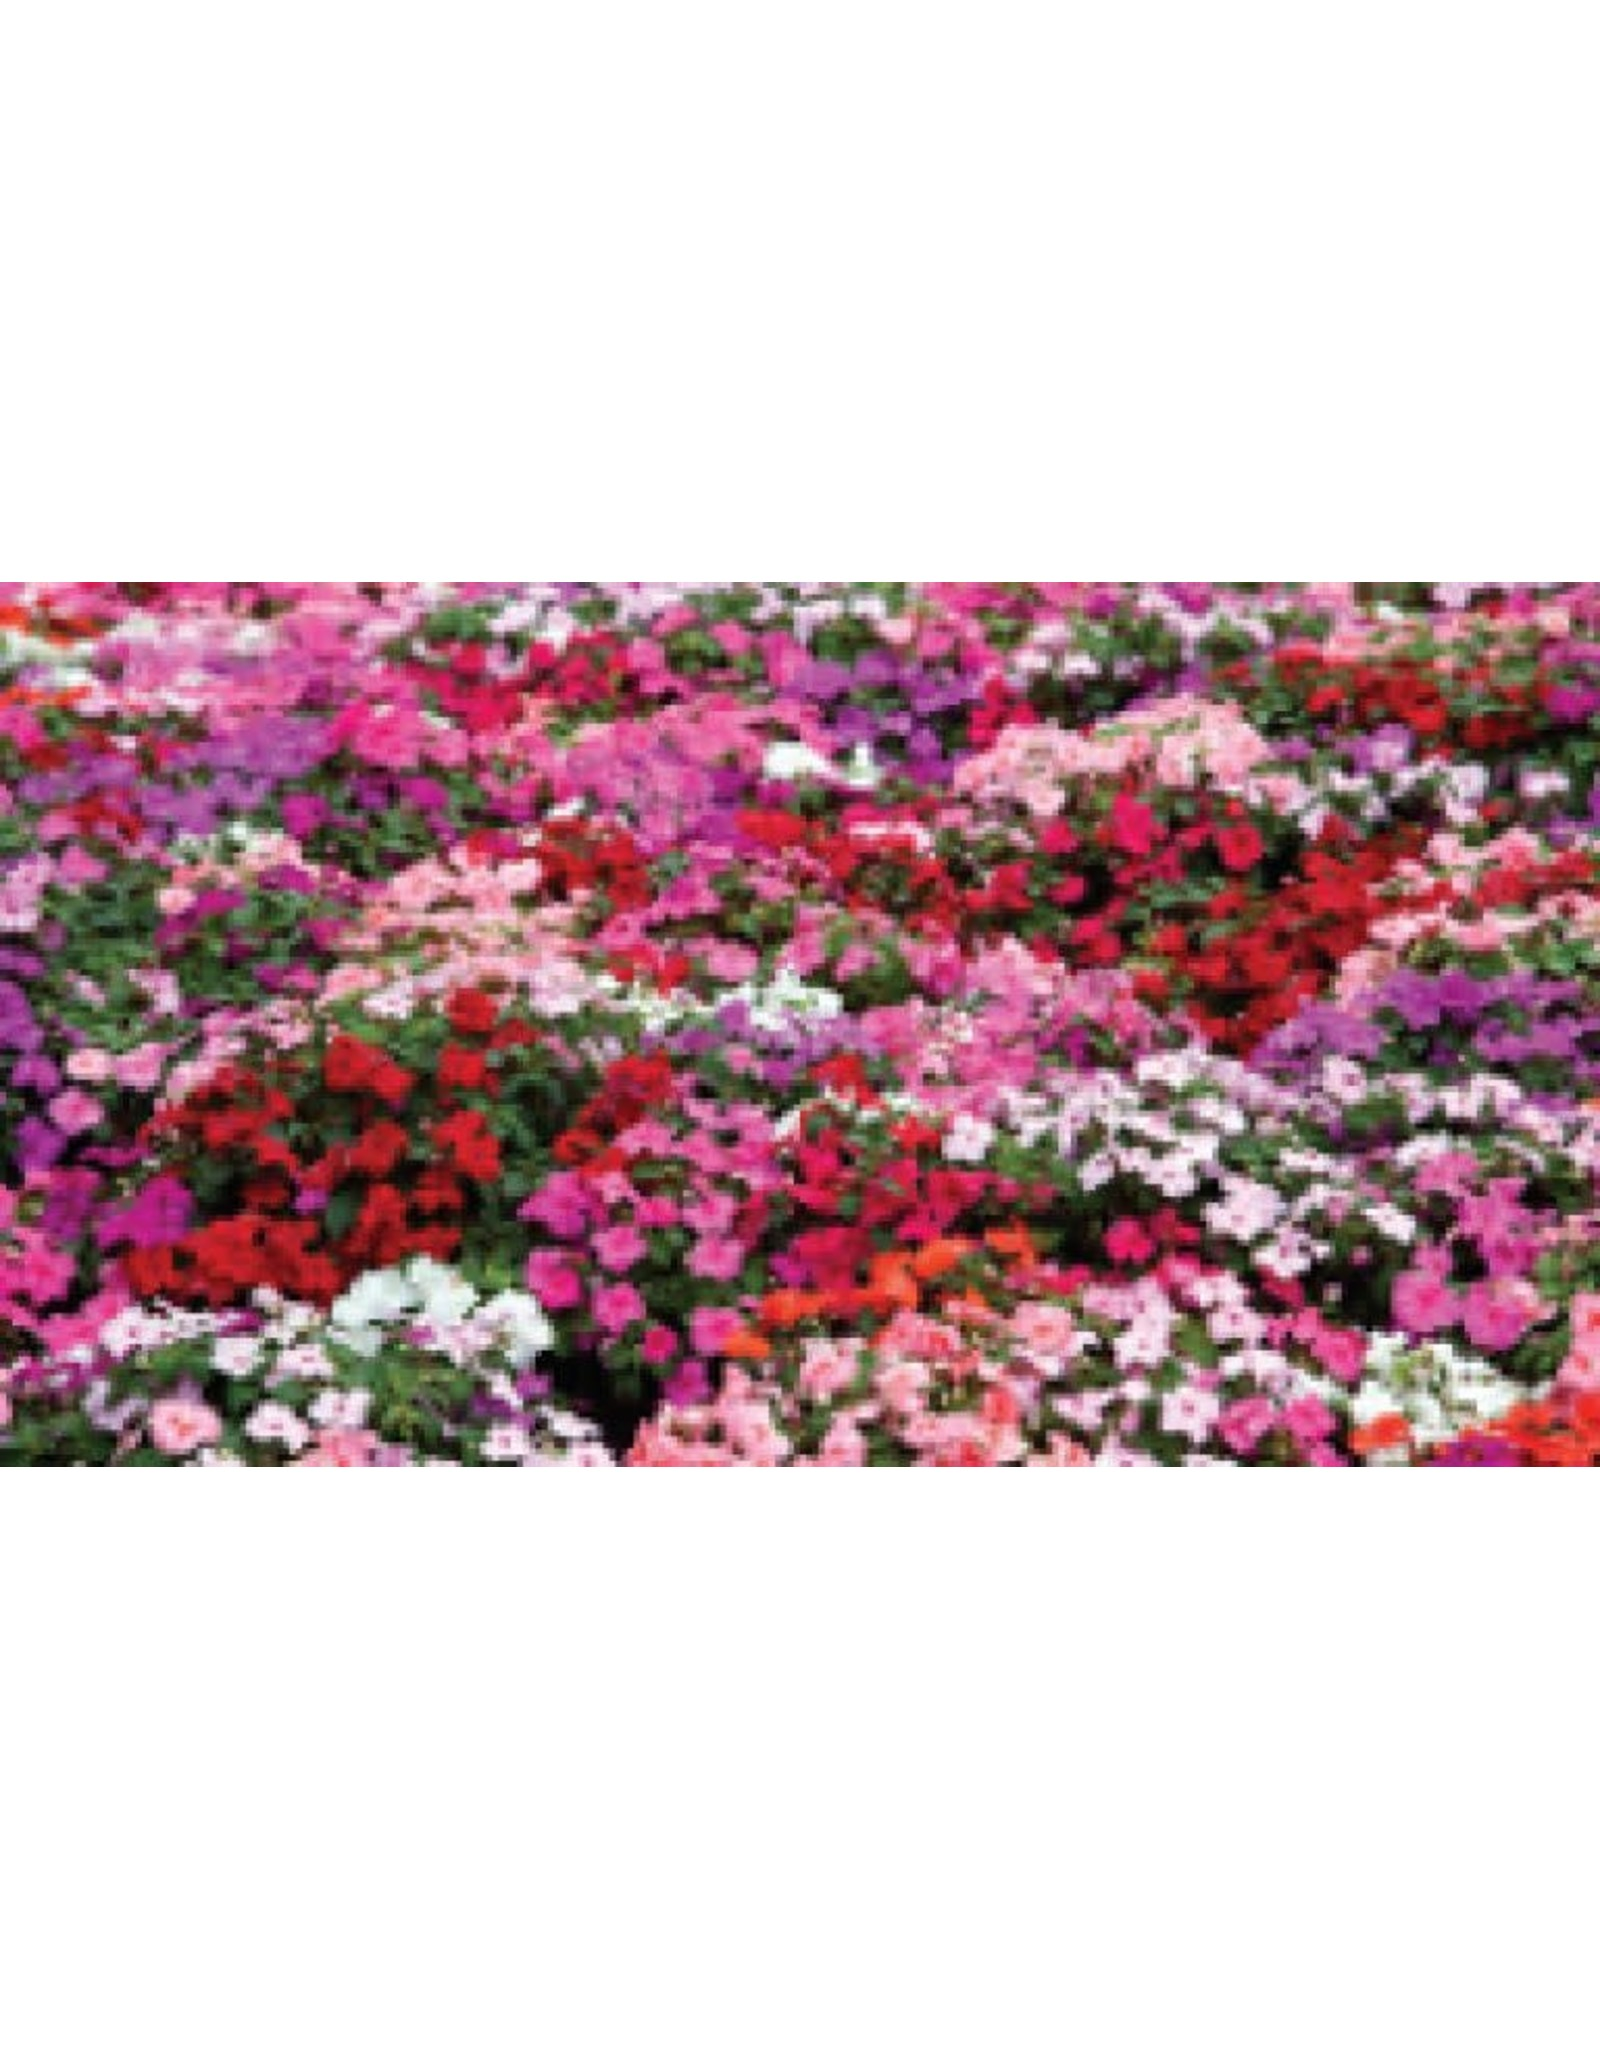 Choice Mixed Impatiens Seeds (Dwarf Bedding Type) 5550